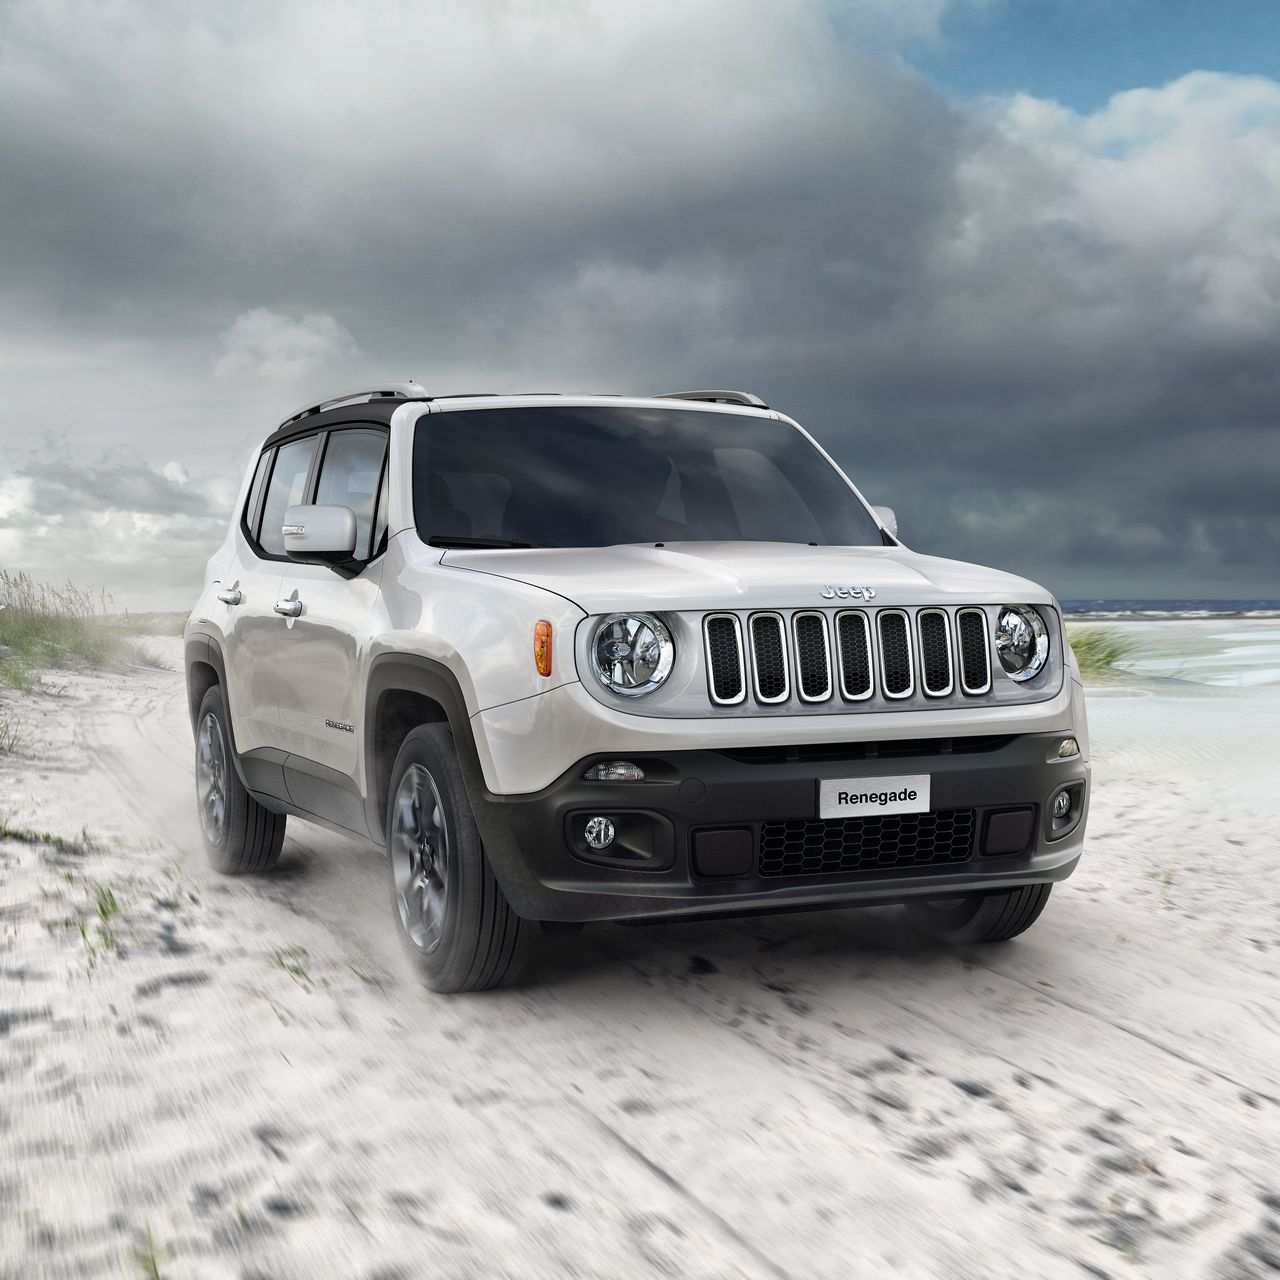 le nouveau jeep renegade 2014 partir de 18 950 euros. Black Bedroom Furniture Sets. Home Design Ideas